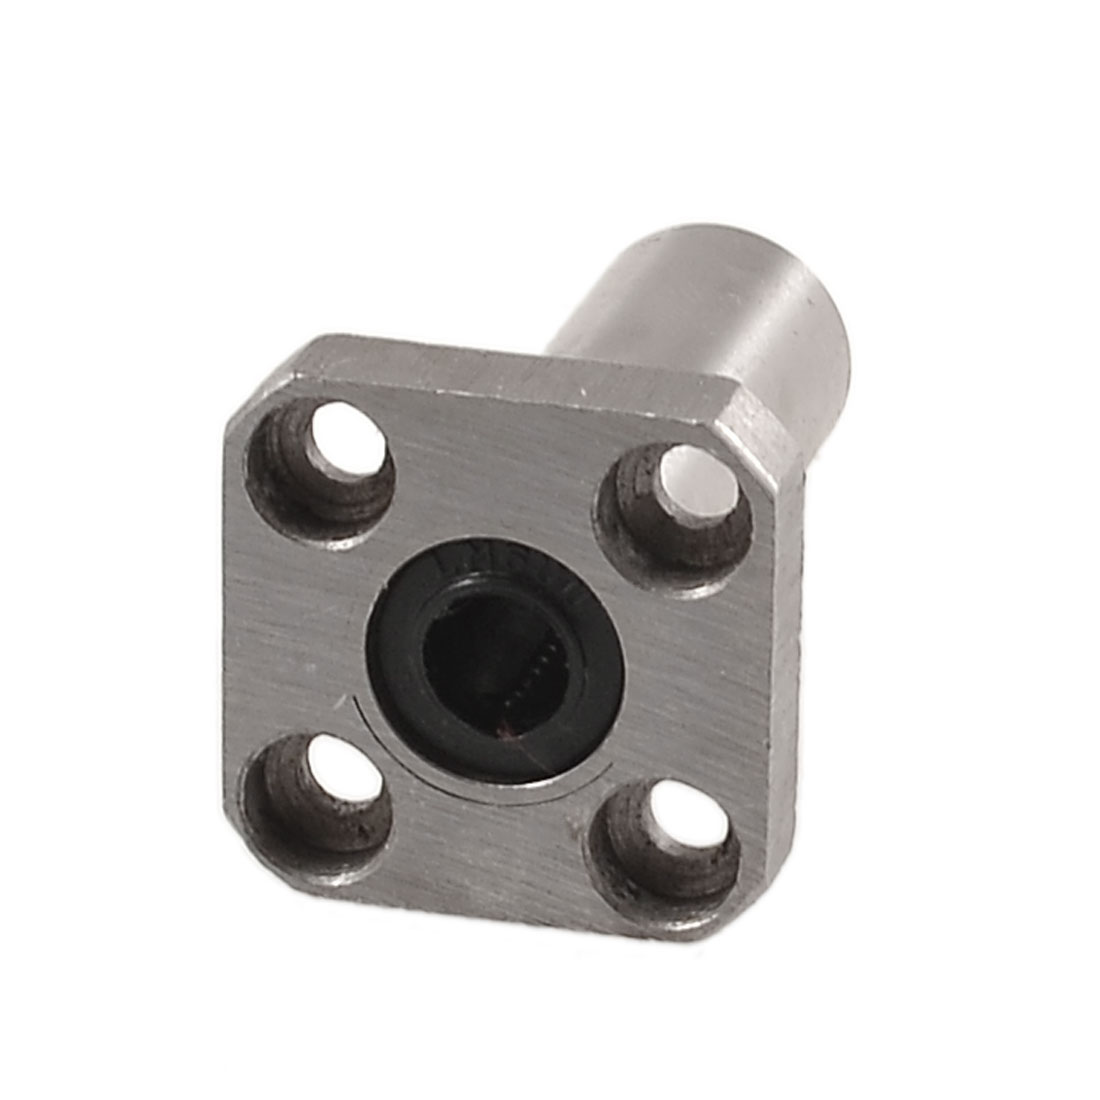 6mm Inner Diameter Square Flange Linear Motion Bushing Ball Bearing LMK6UU